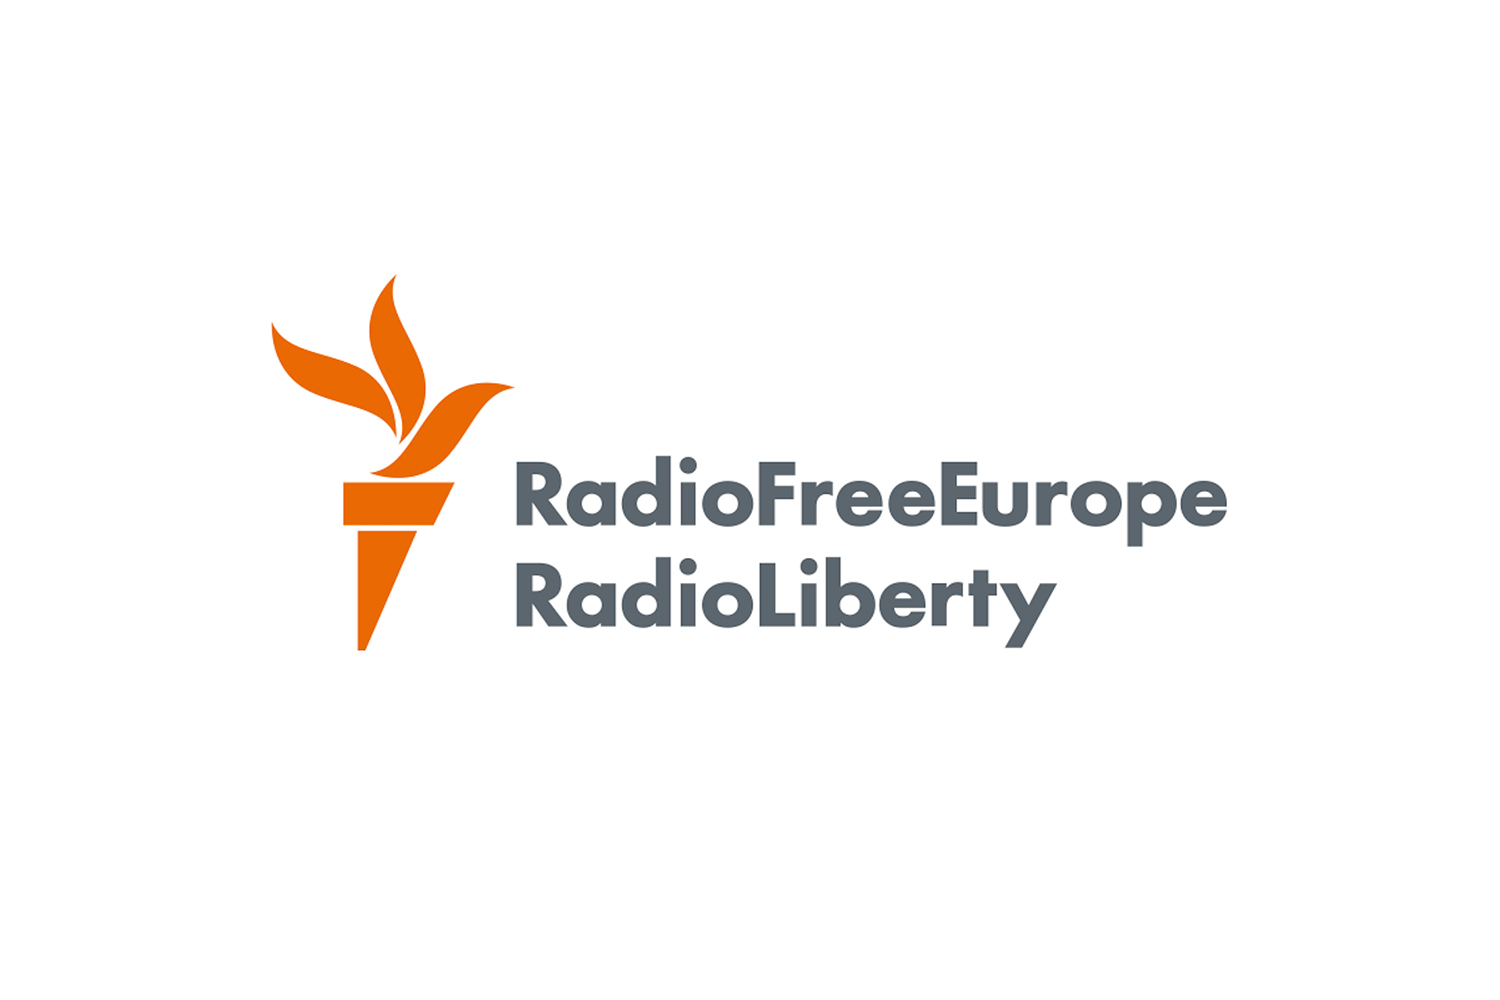 OCCRP Concerned by Steps that Compromise Independence of Partner Network Radio Free Europe/Radio Liberty